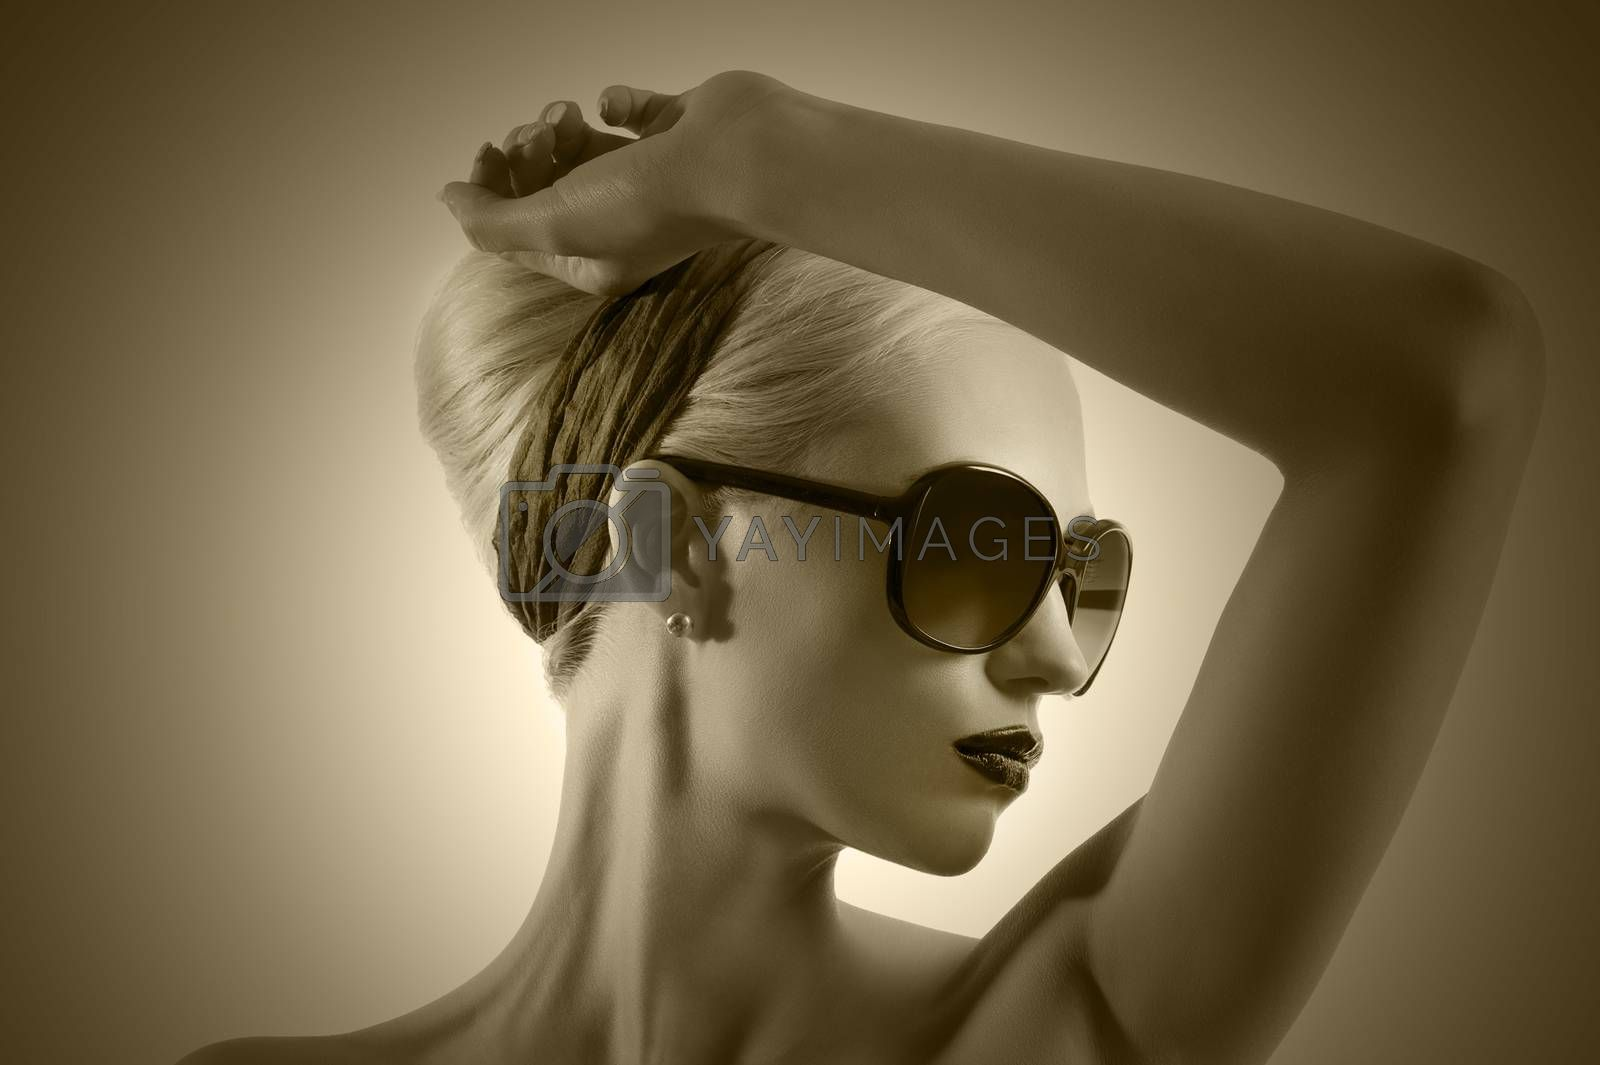 Royalty free image of fashion shot of blond girl with sunglasses posing against white  by fotoCD